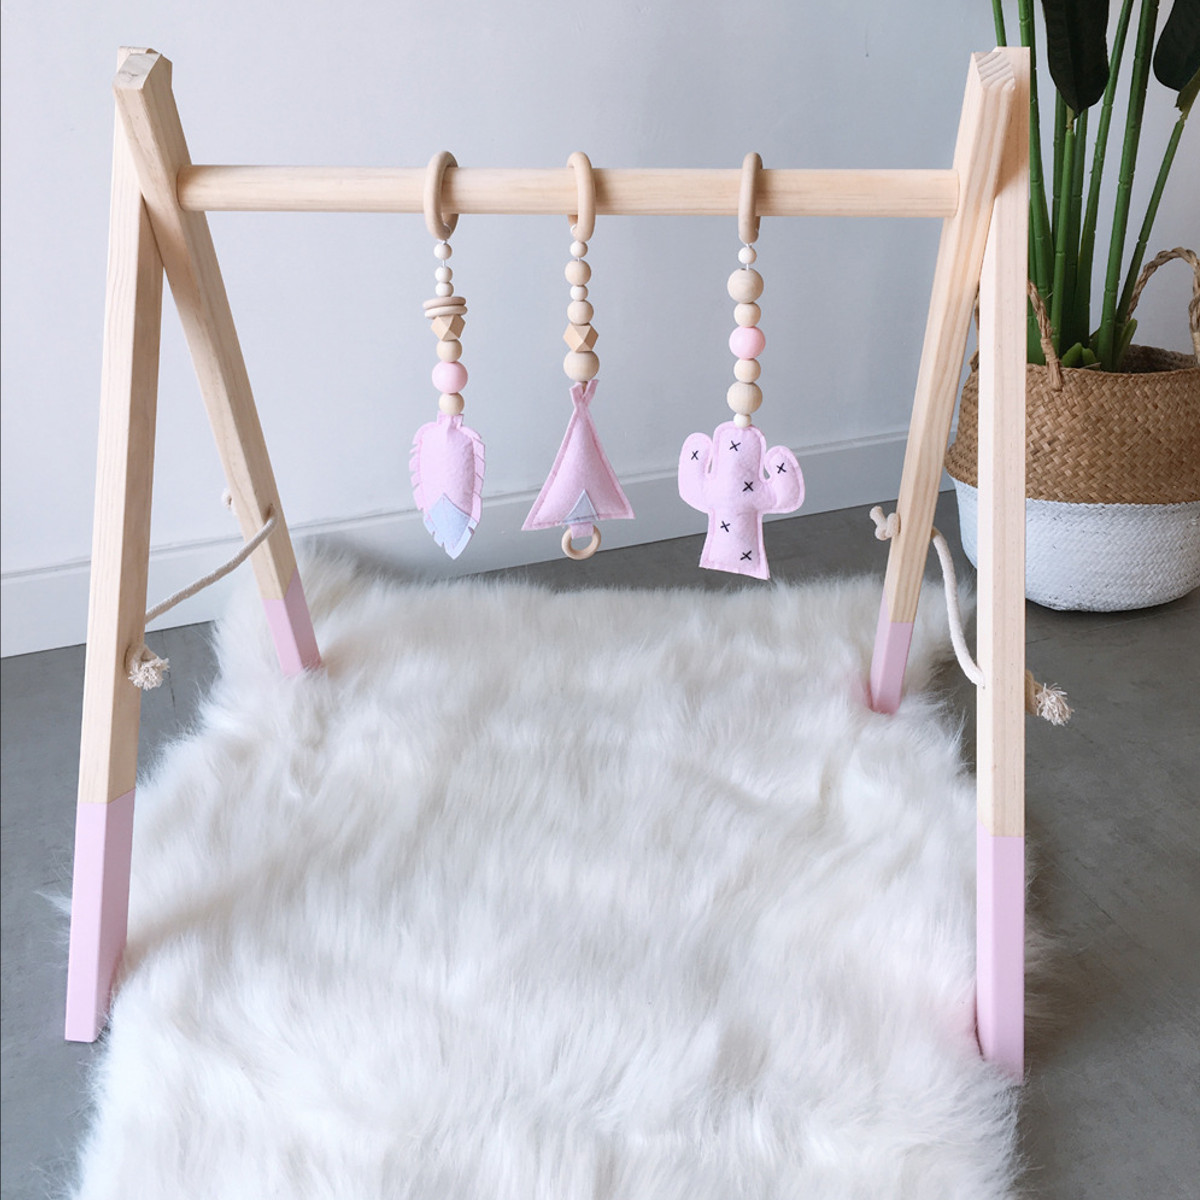 3Pcs Infant Baby Hanging Cartoon Activity Gym Pendant Decoration Toy Newborn Early Educational Carpet Toys Children Ins Style | Happy Baby Mama